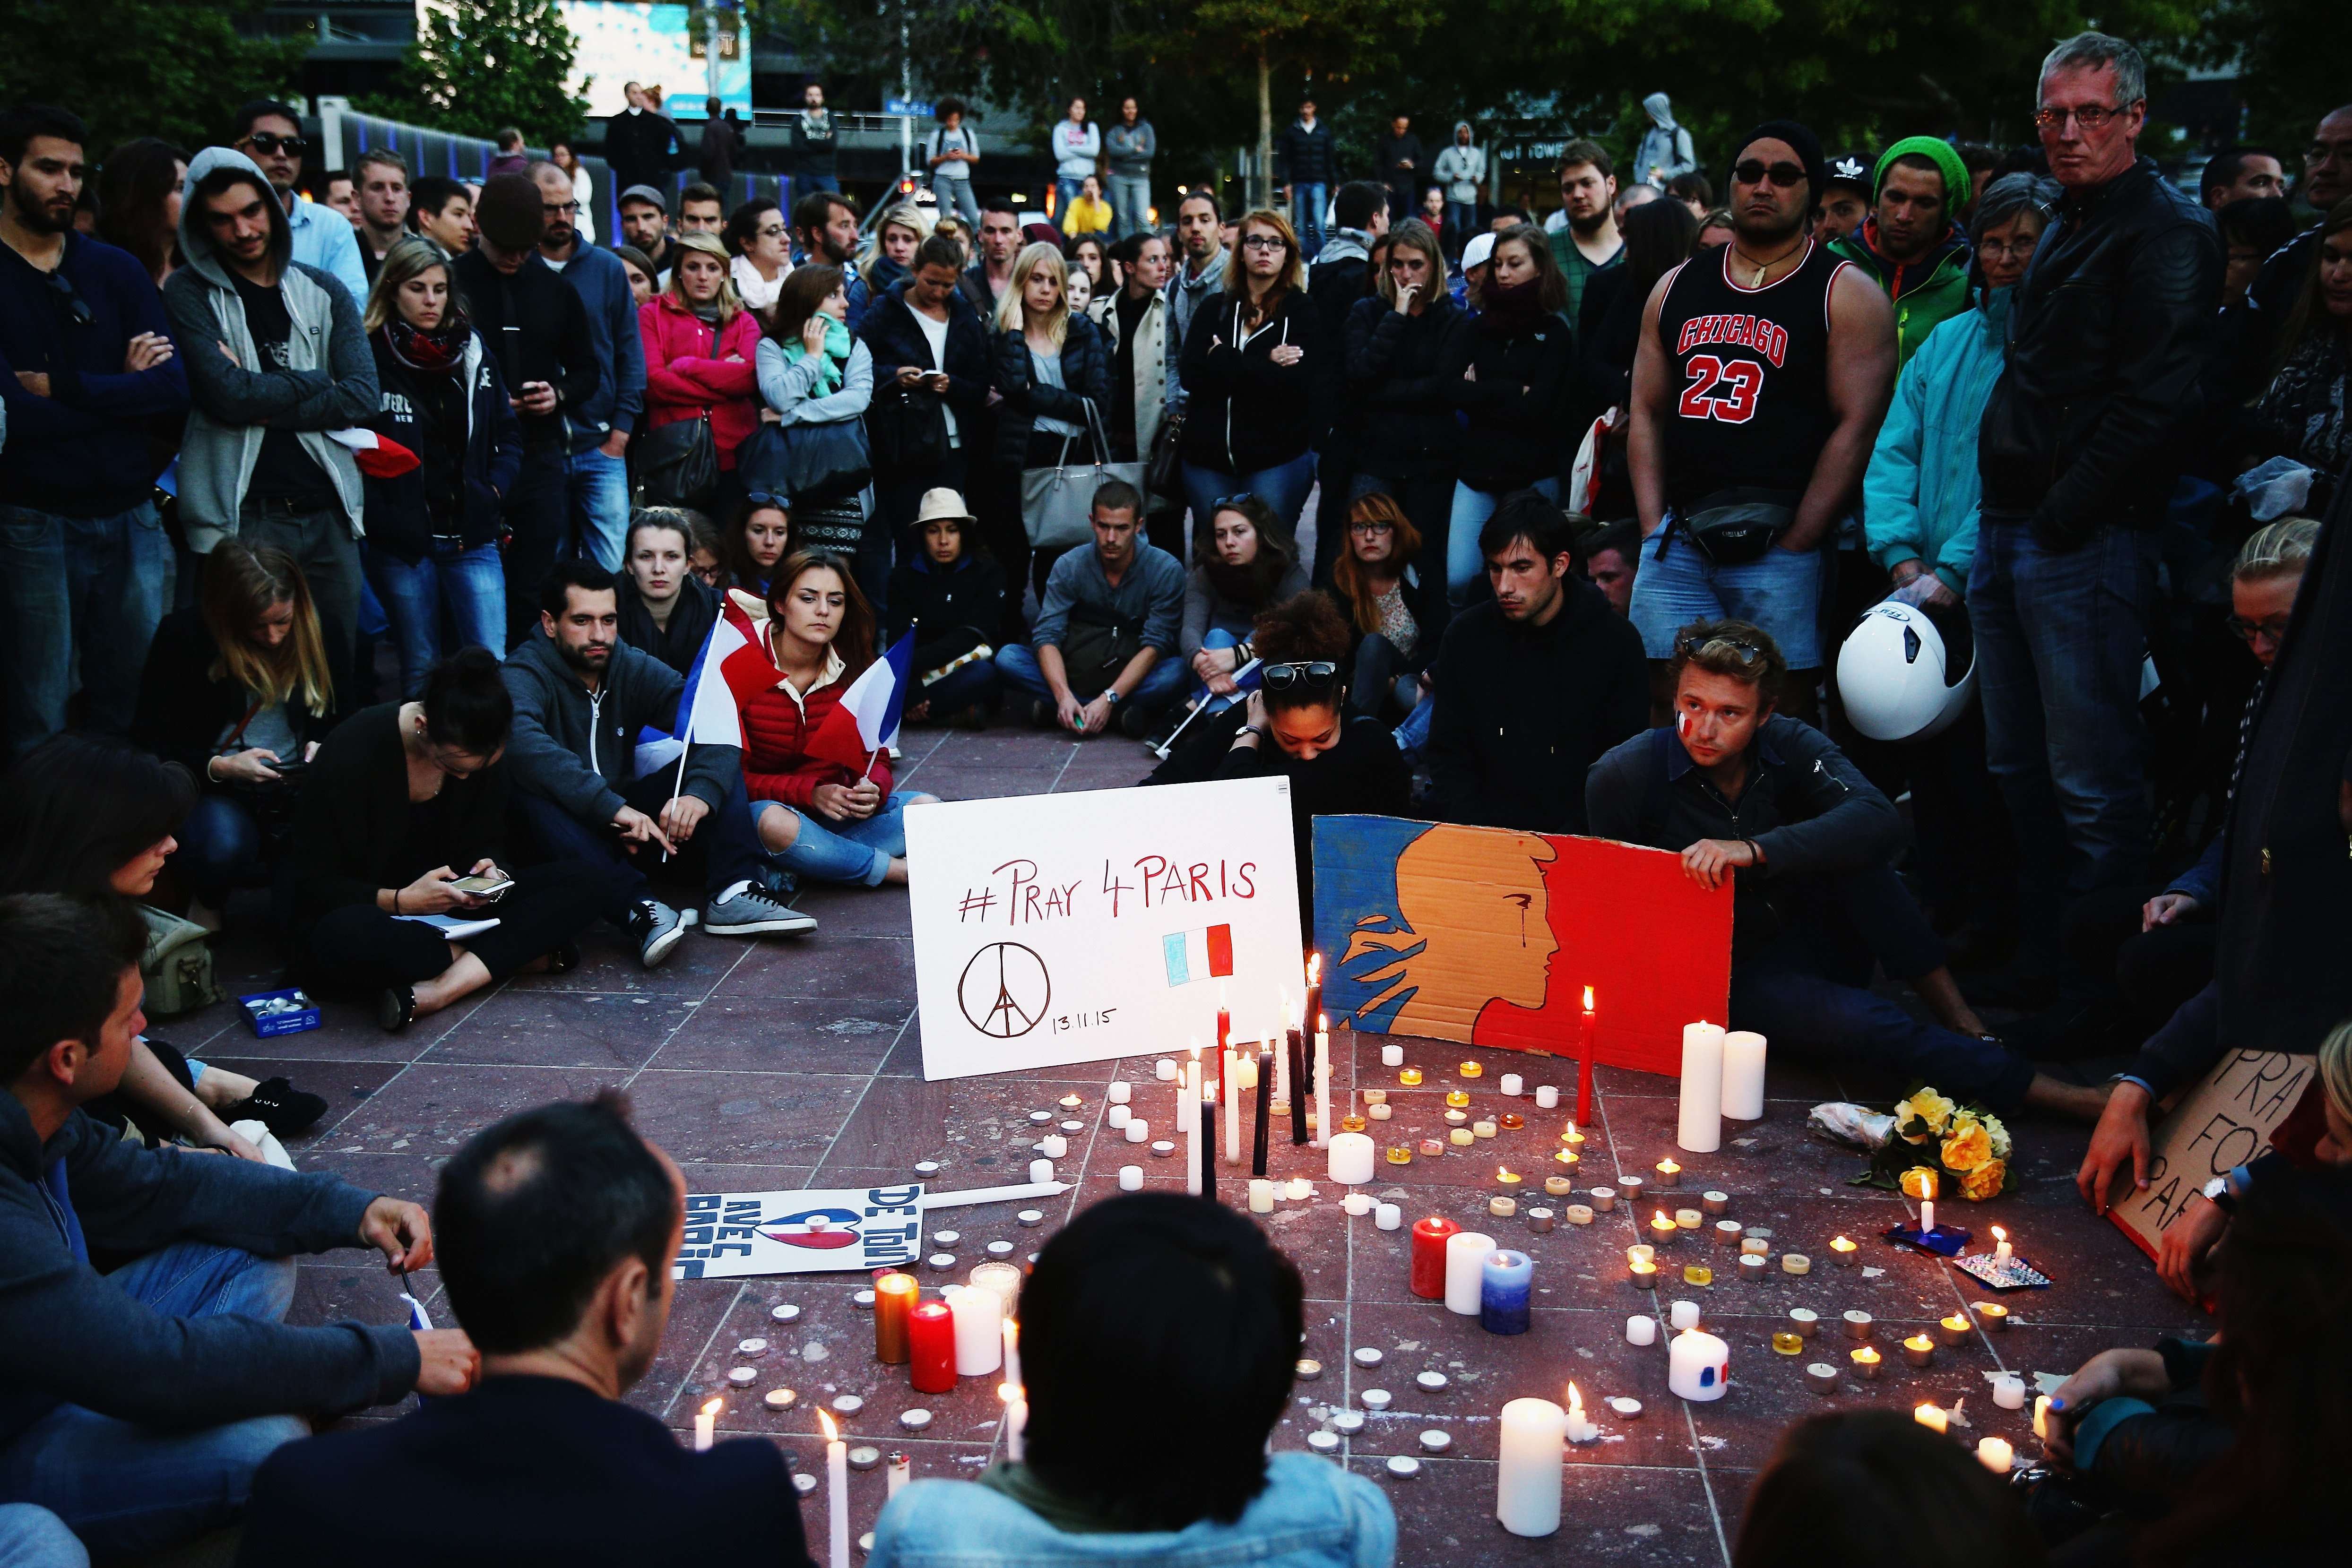 People gather during a vigil in Aotea Square in Auckland, New Zealand on Nov. 14, 2015.